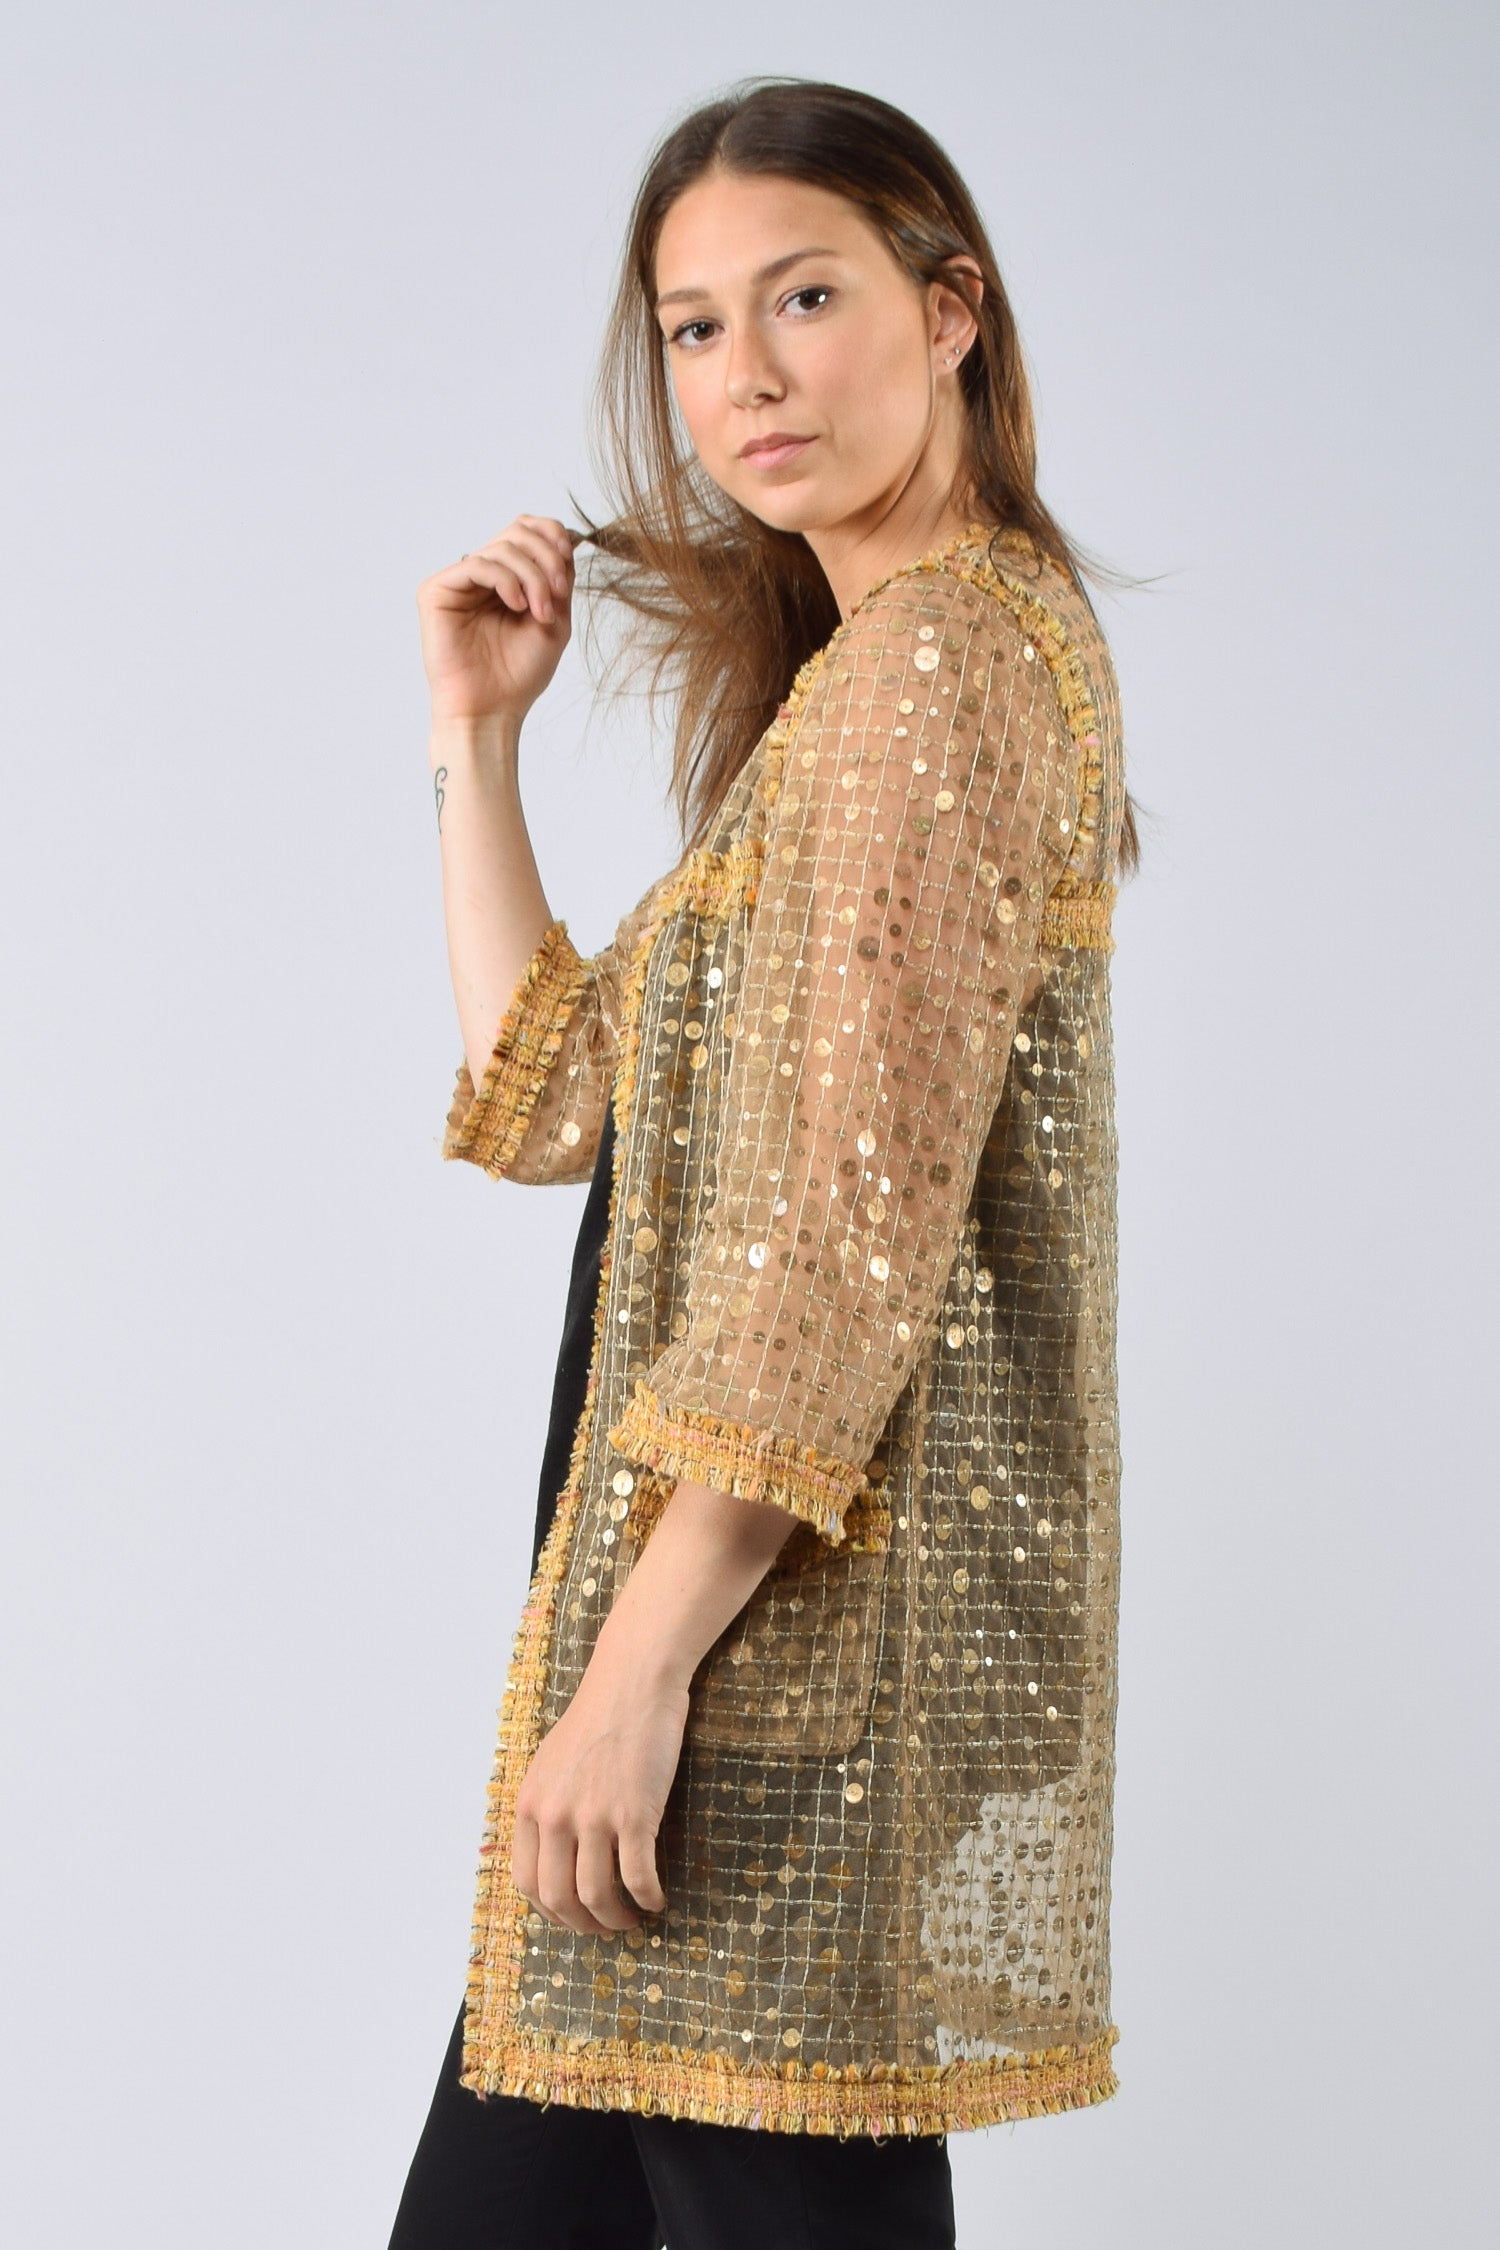 Chanel Yellow/Gold Sequin Sheer L/S Cardigan Size 36